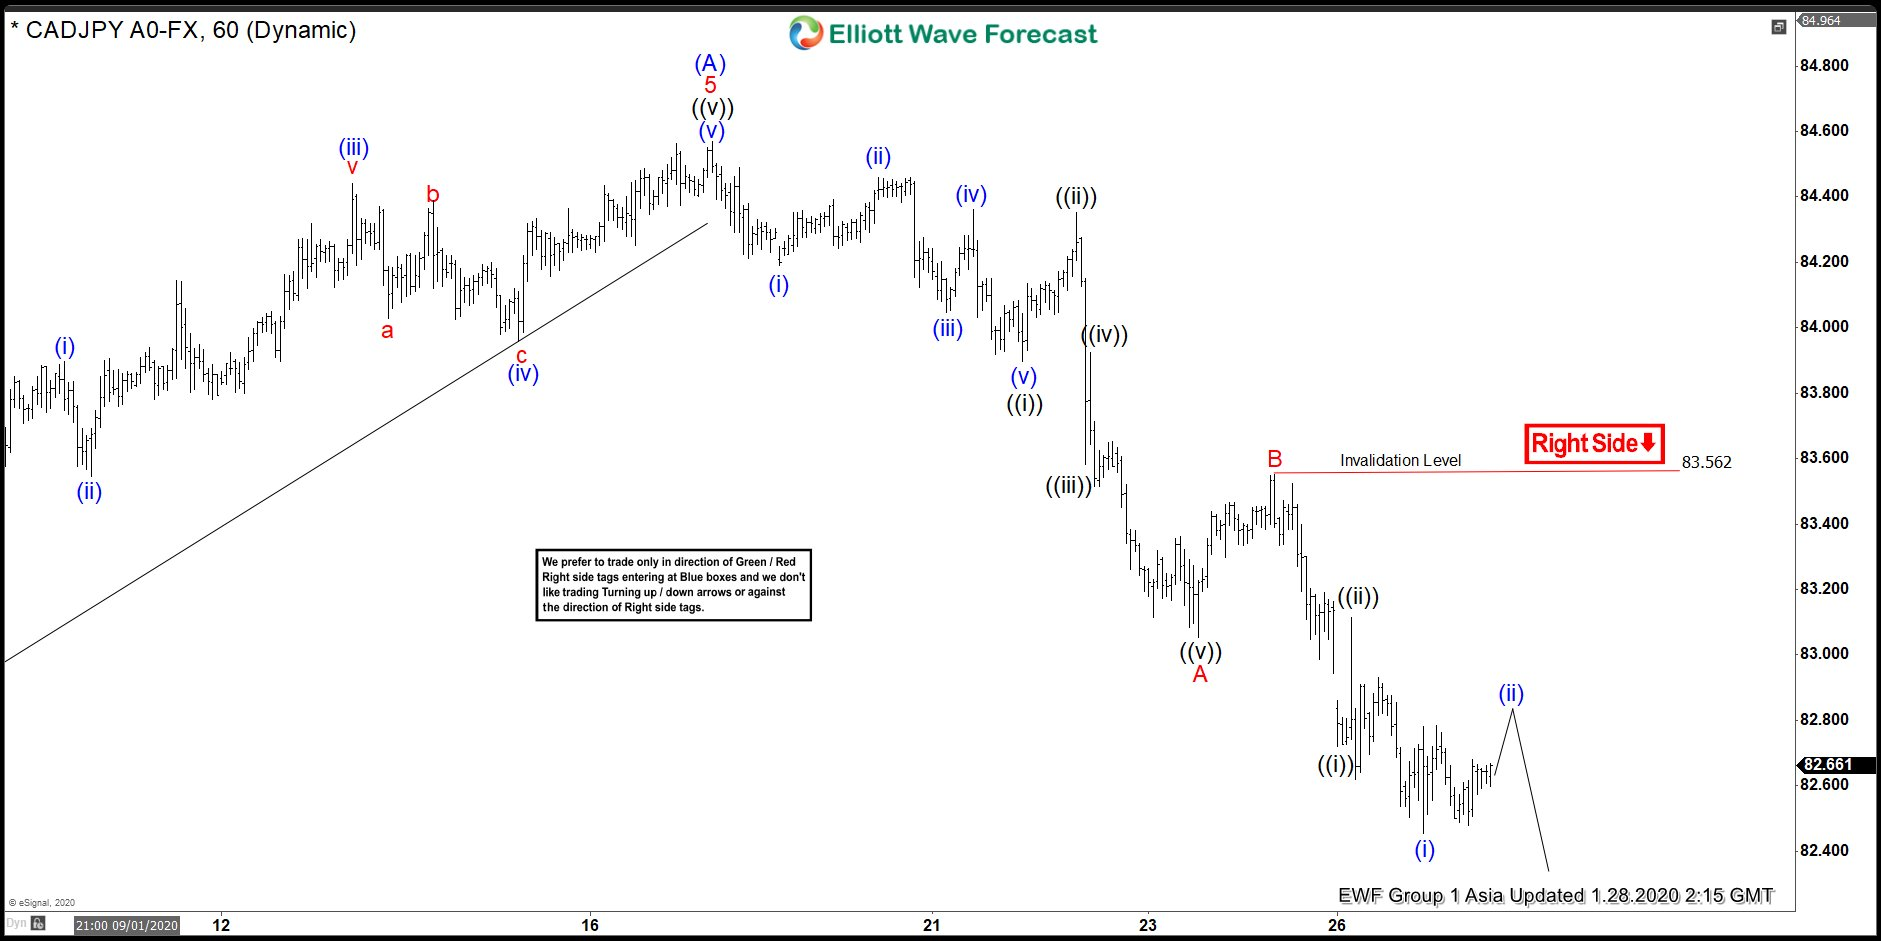 CADJPY Elliott Wave View: Pullback Another Opportunity To Buy?